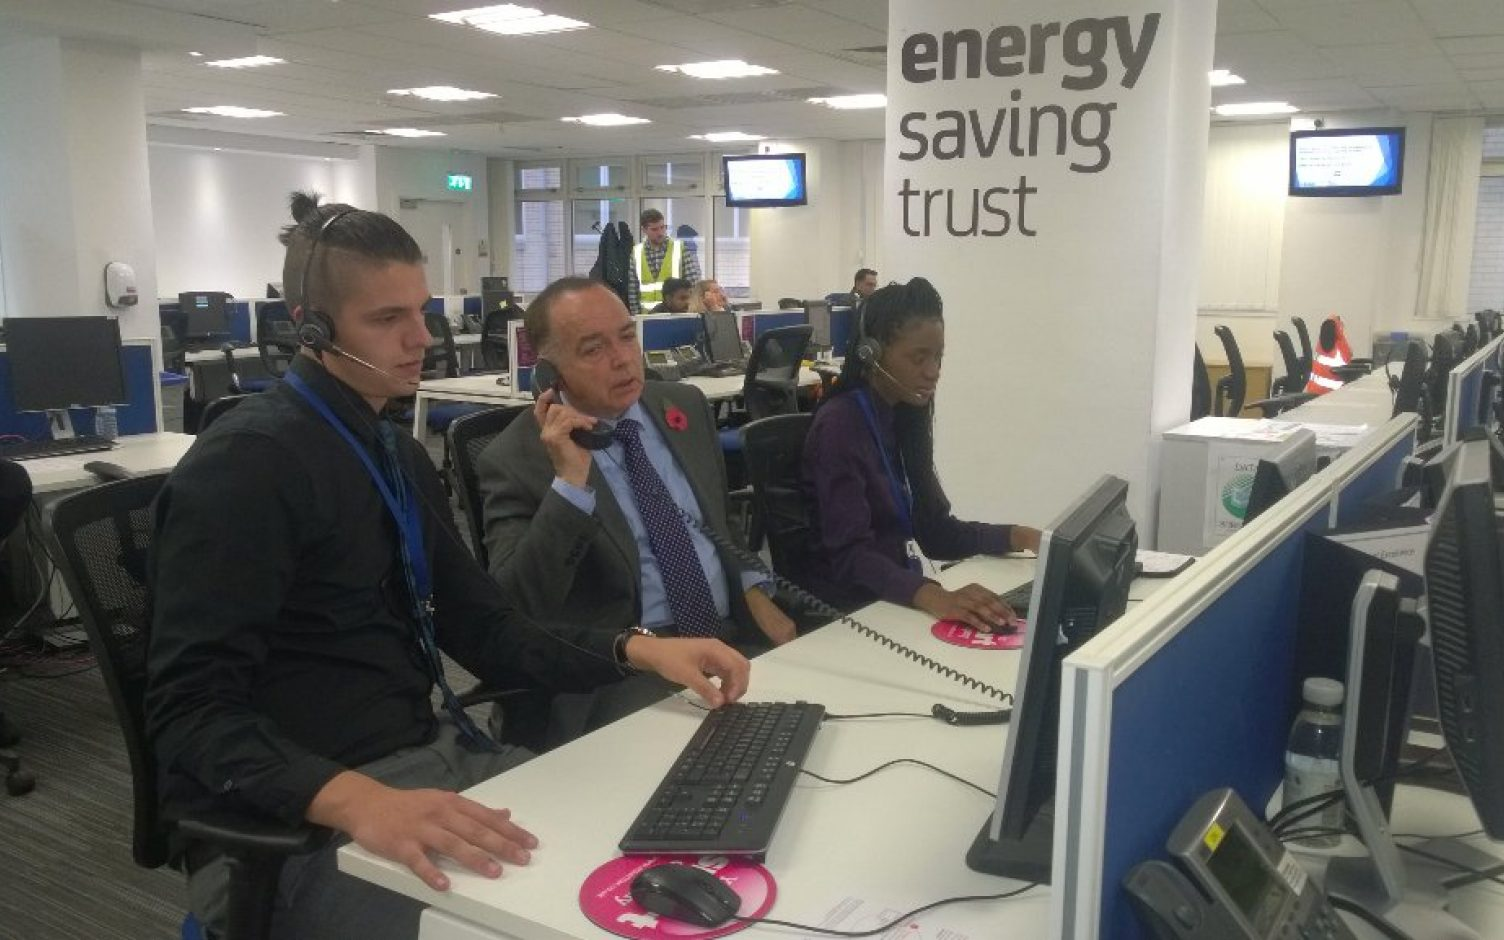 Industry still waiting on policy pipeline as DECC celebrates Energy Saving Week